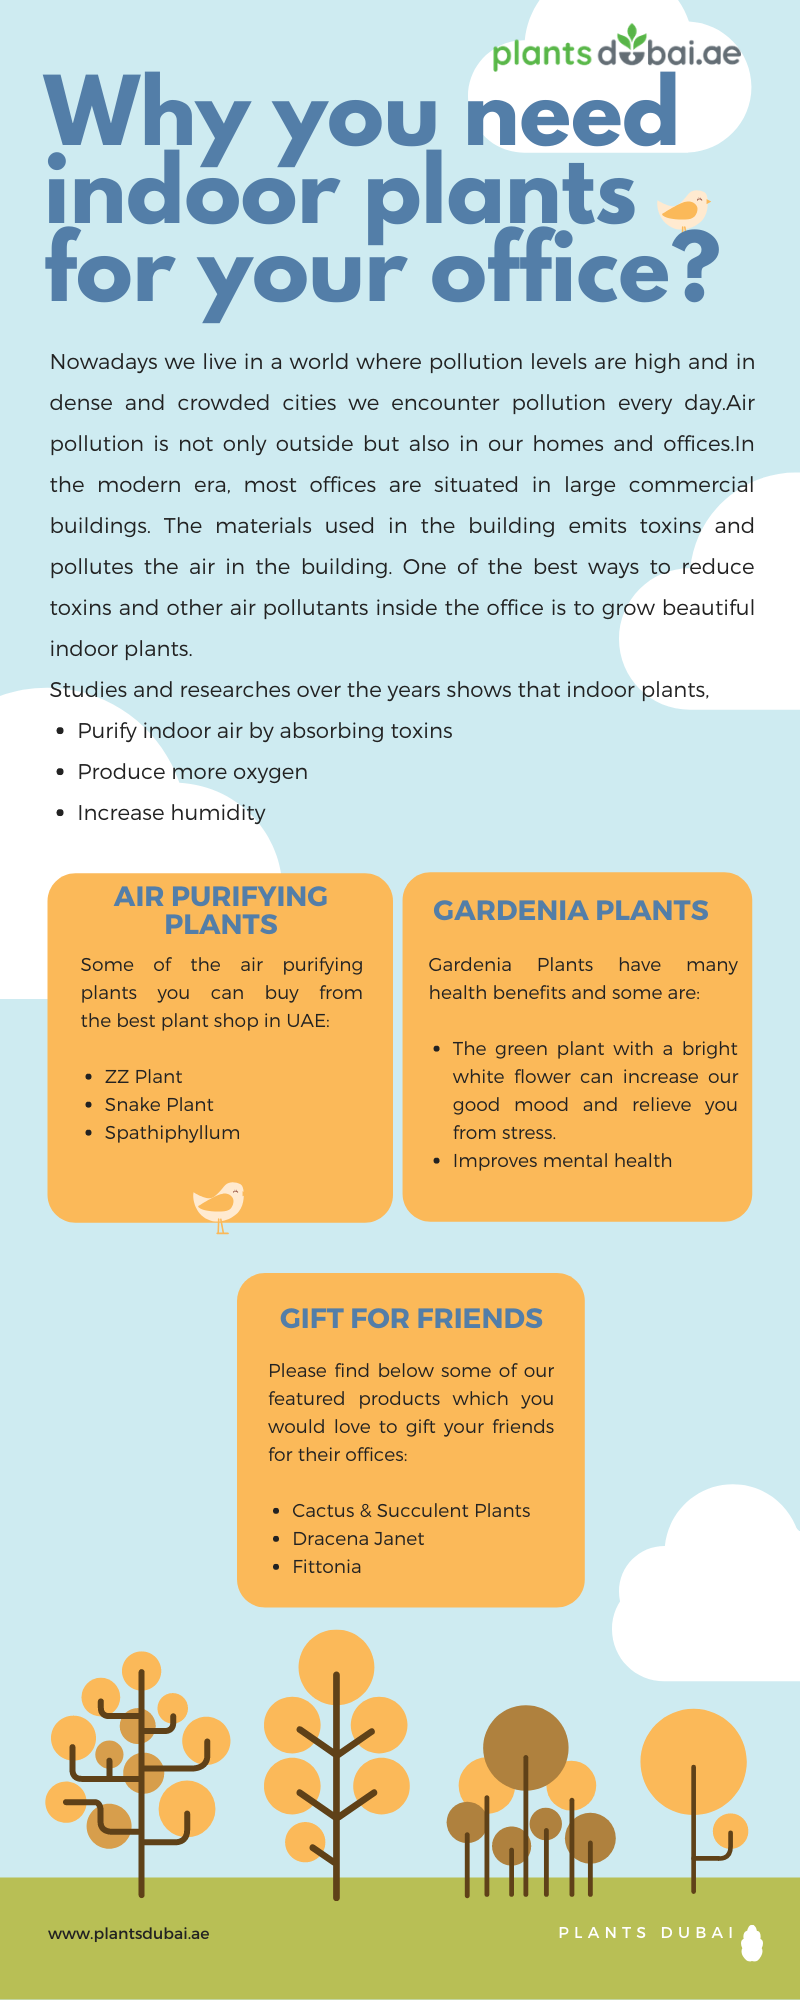 Why You Need Indoor Plants For Your Office?